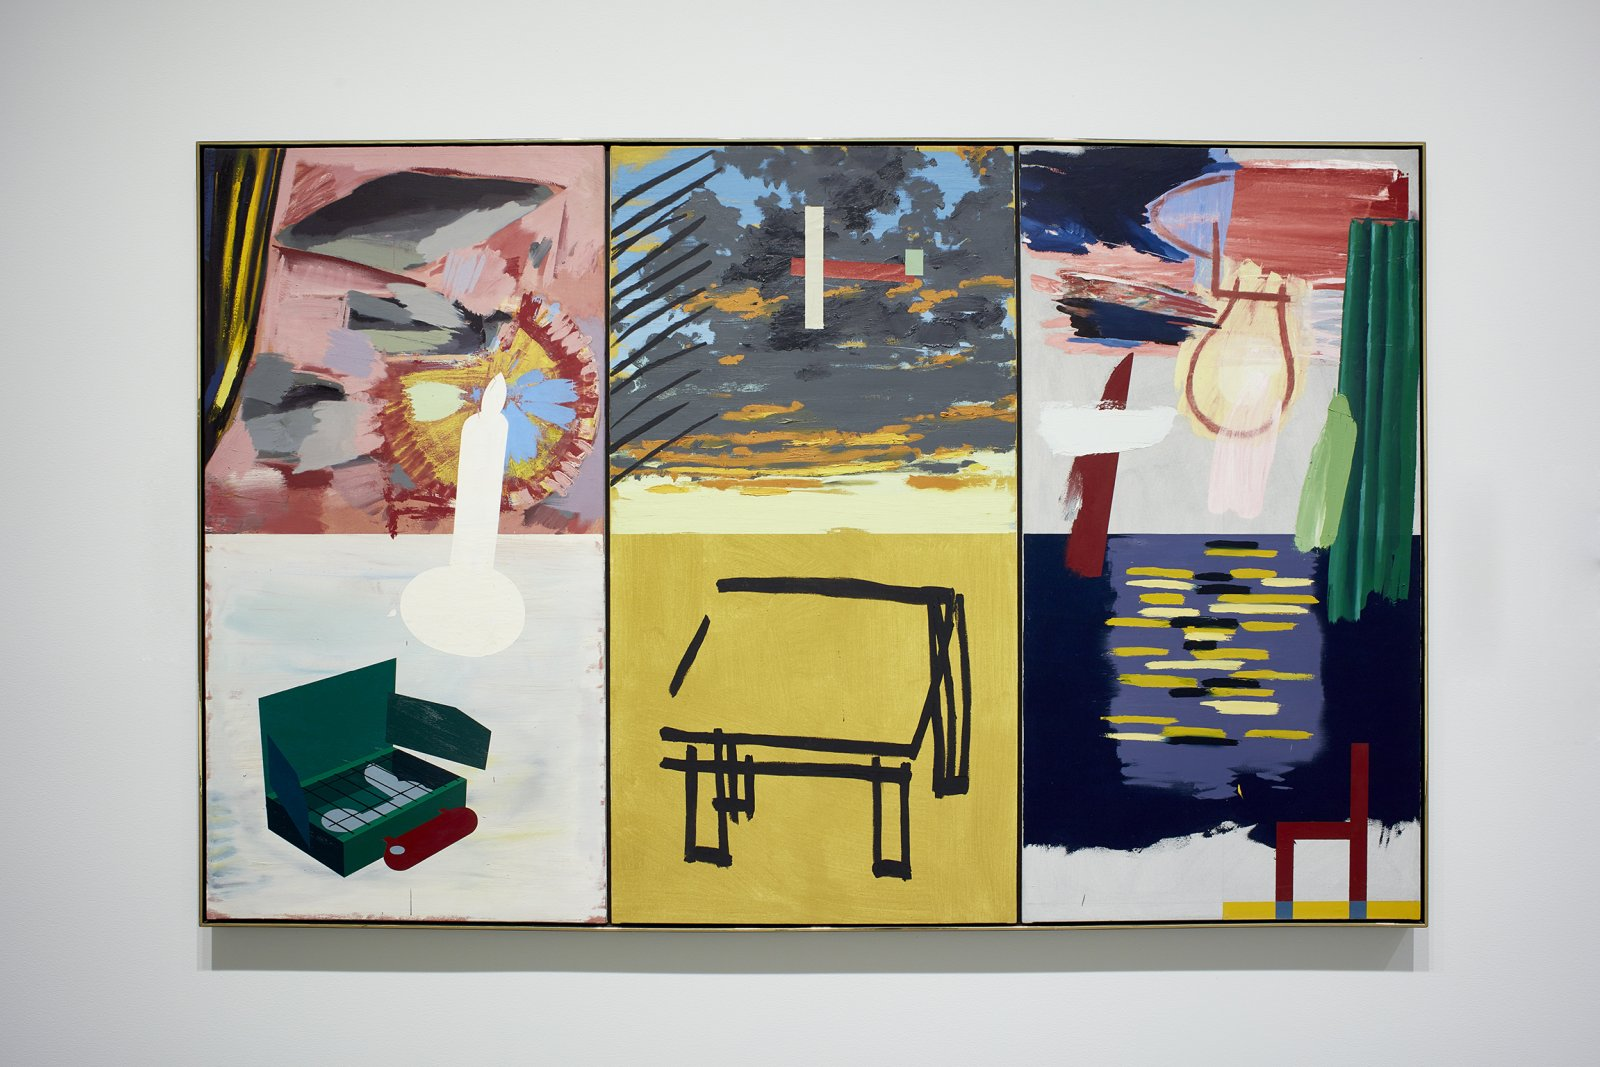 Ron Moppett, Studio/Light 3, 1981, oil on canvas, 59 x 94 in. (152 x 238 cm). Installation view, Every Story Has Two Sides, Art Gallery of Alberta, Edmonton, 2016 by Damian Moppett